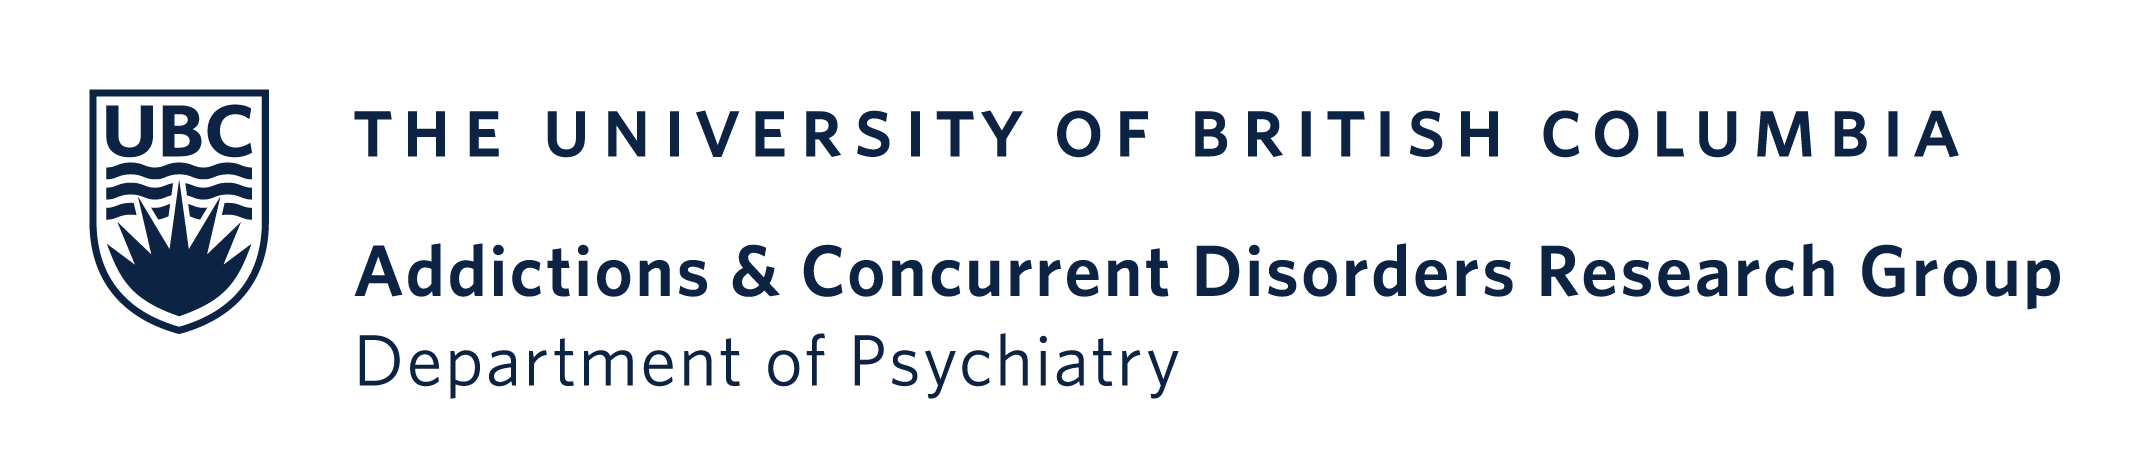 ACD Research Group logo